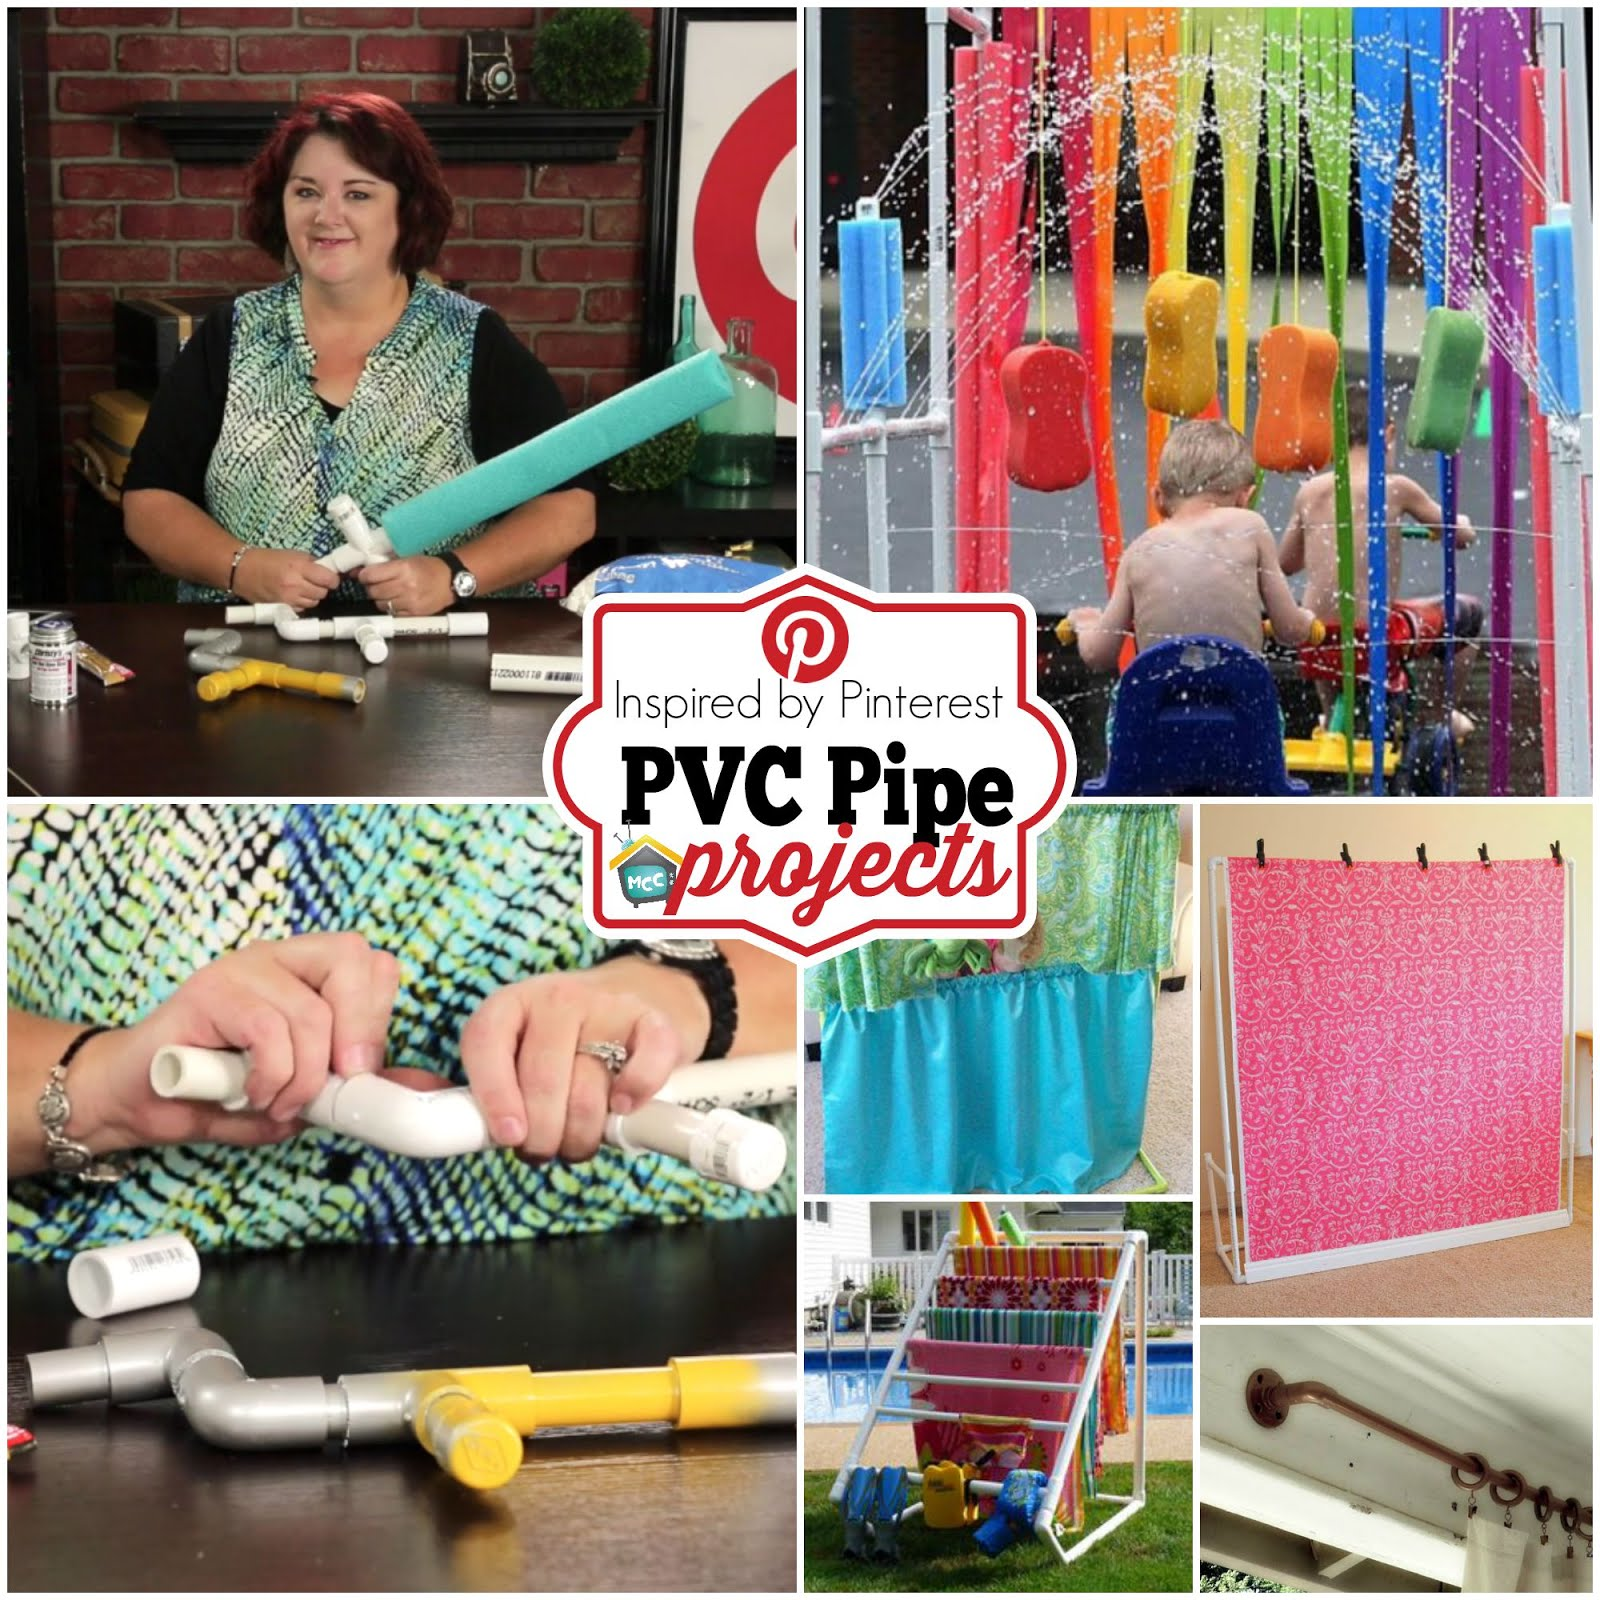 PVC Pipe Creations